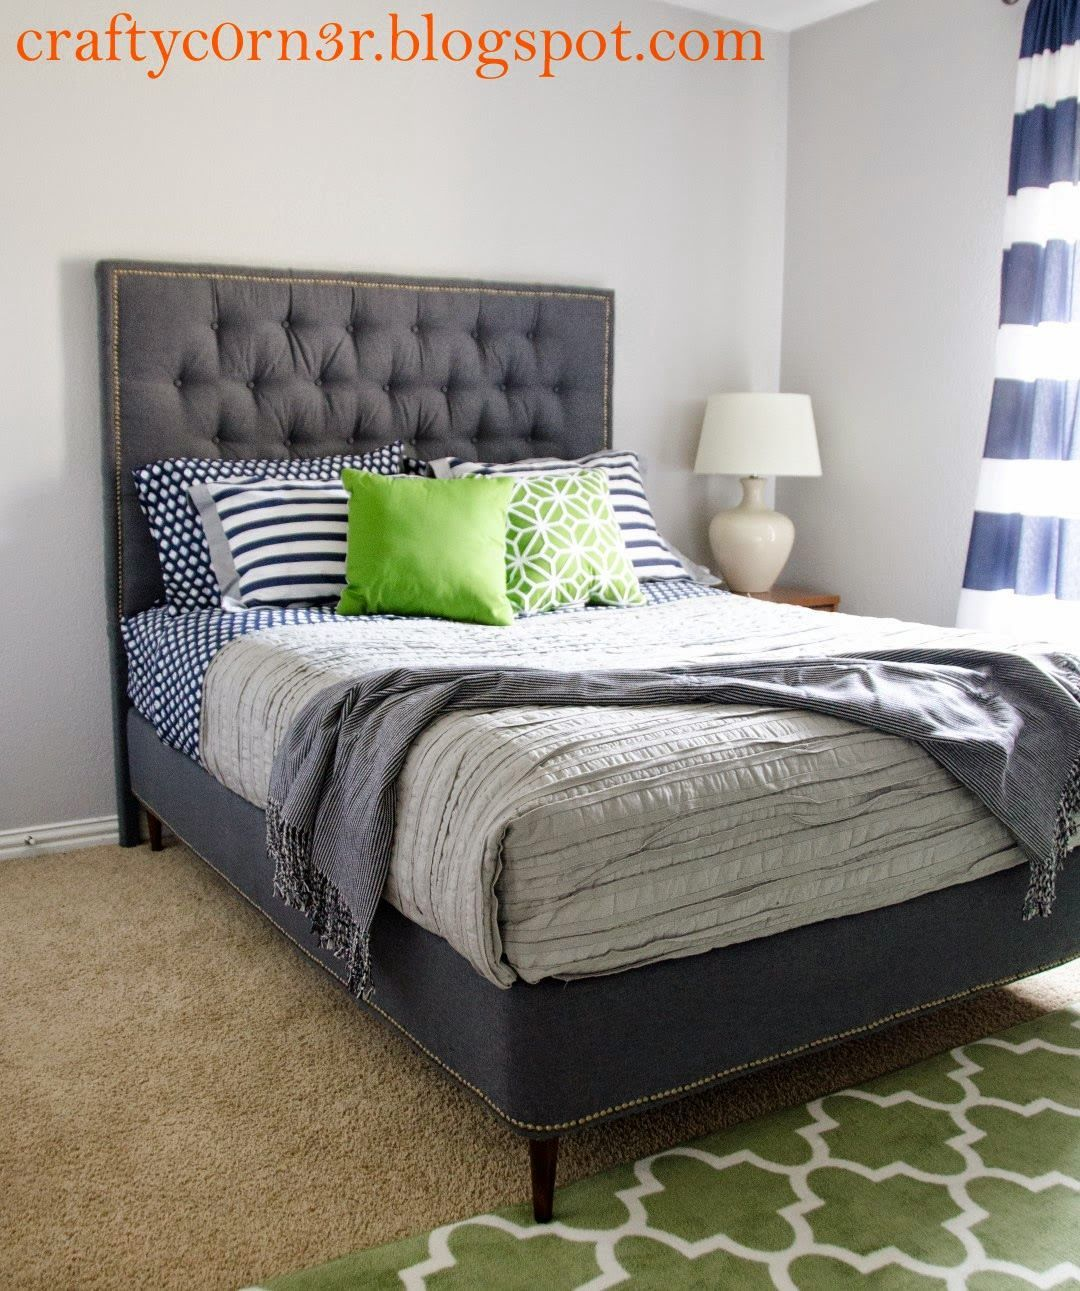 Converting A Box Spring Into A Platform Bed Diy Bed Frame